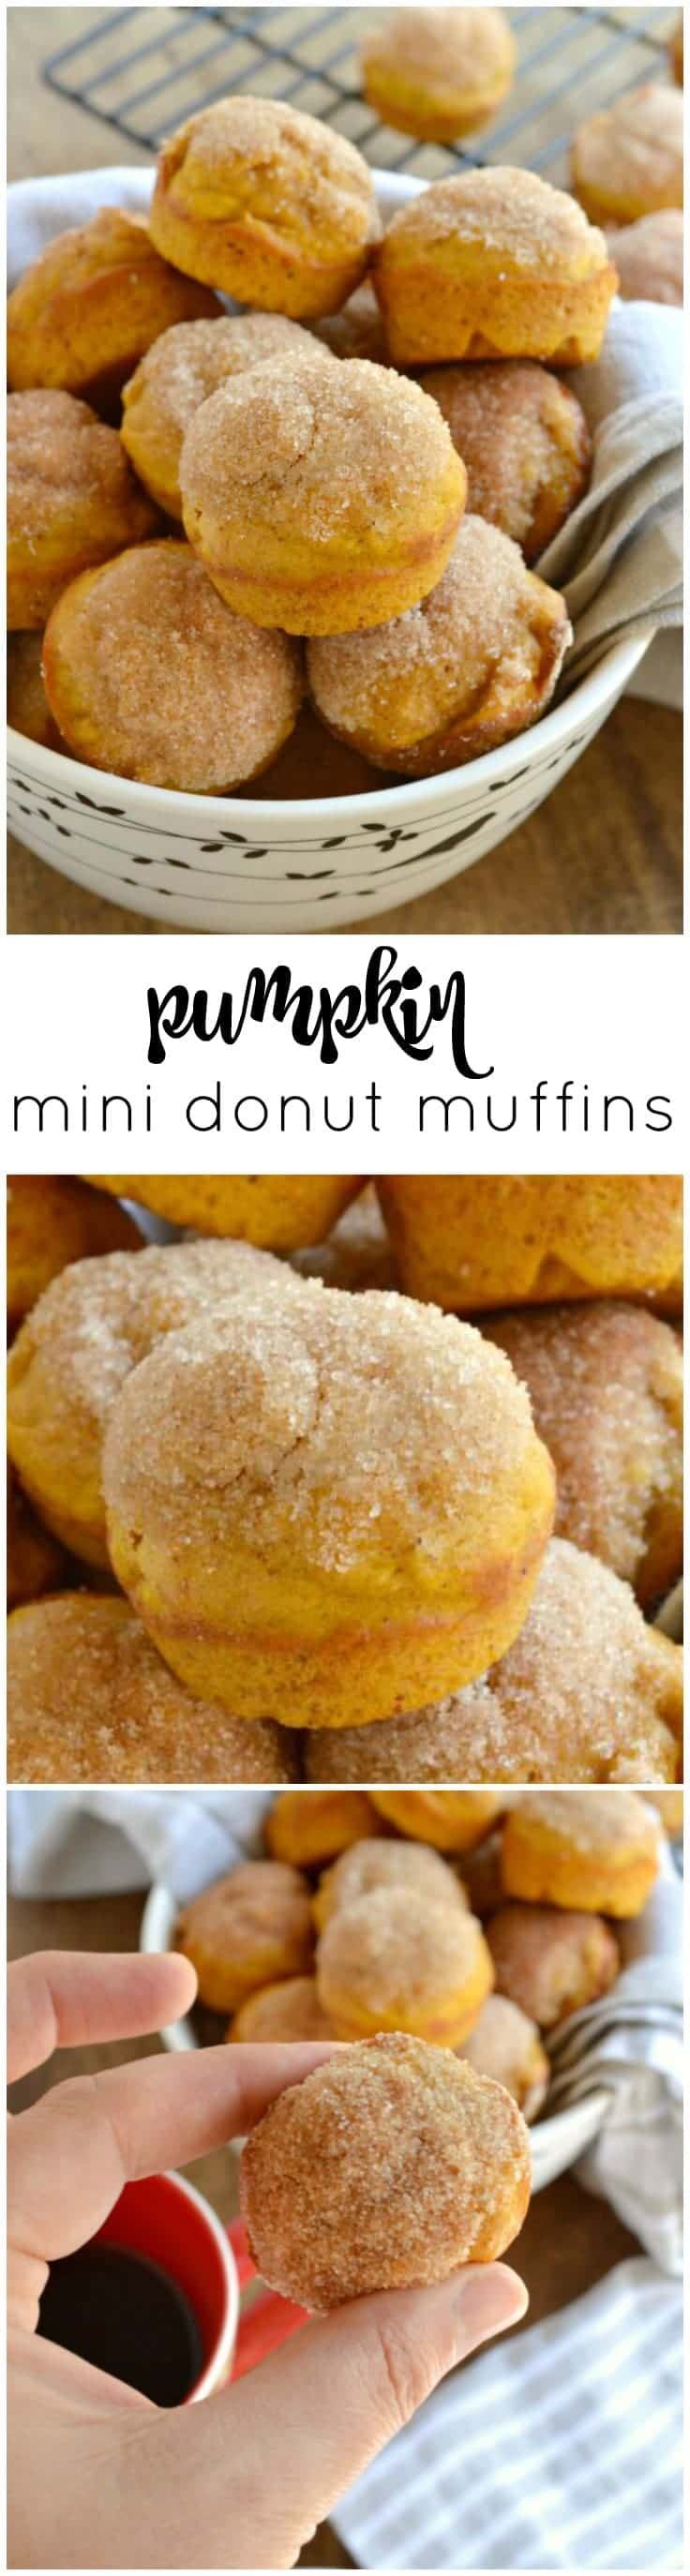 These Pumpkin Mini Donut Muffins are like baked donut holes that are brushed with butter and dipped in cinnamon sugar!